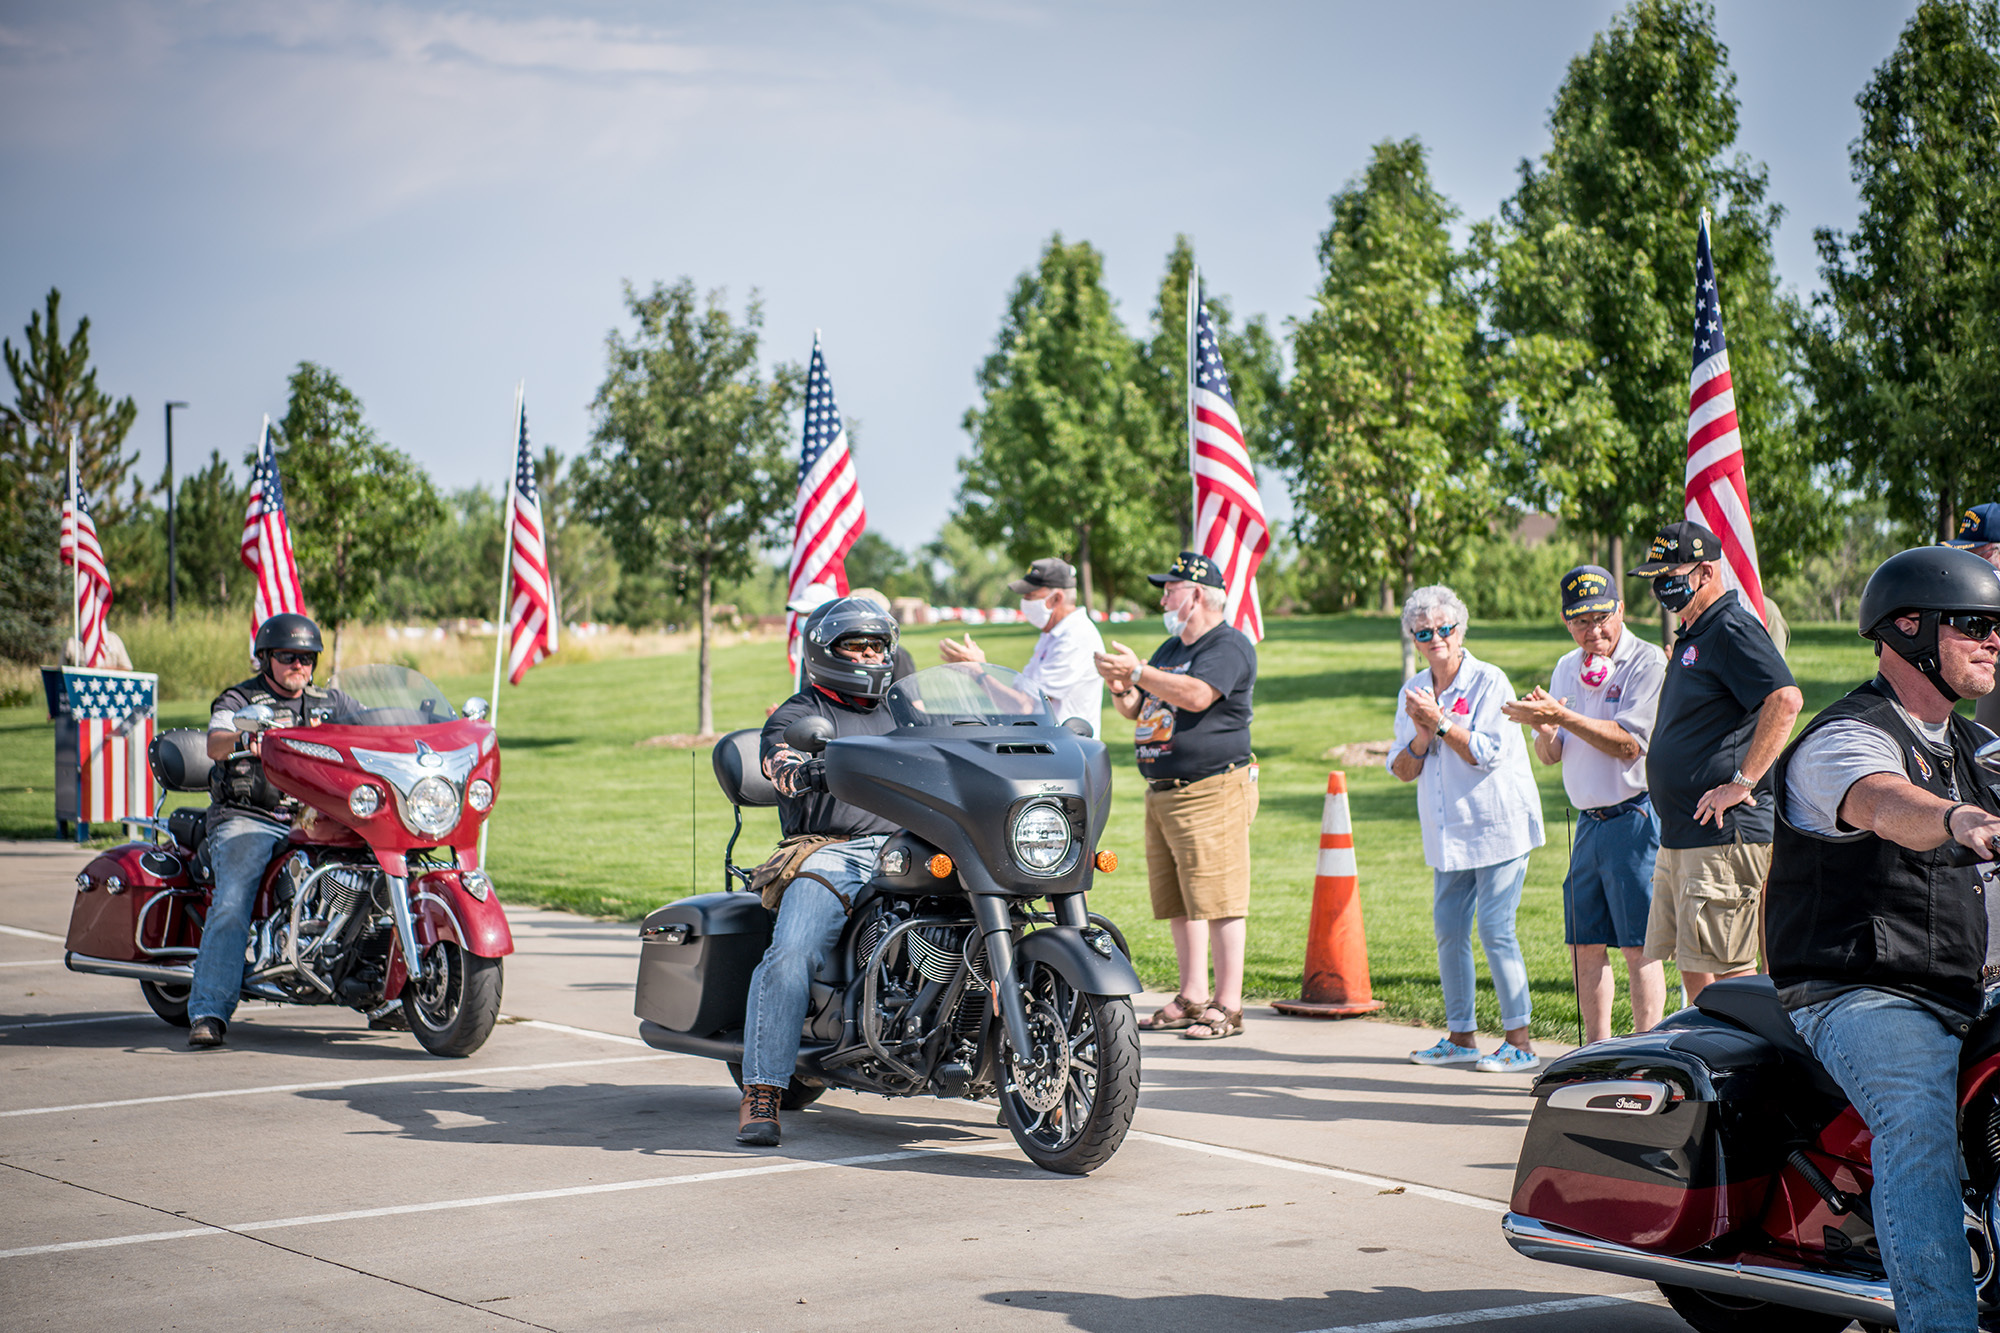 210707 Indian Motorcycle and Veterans Charity Ride Mark 7th Annual Motorcycle Therapy Adventure to Sturgis (1)